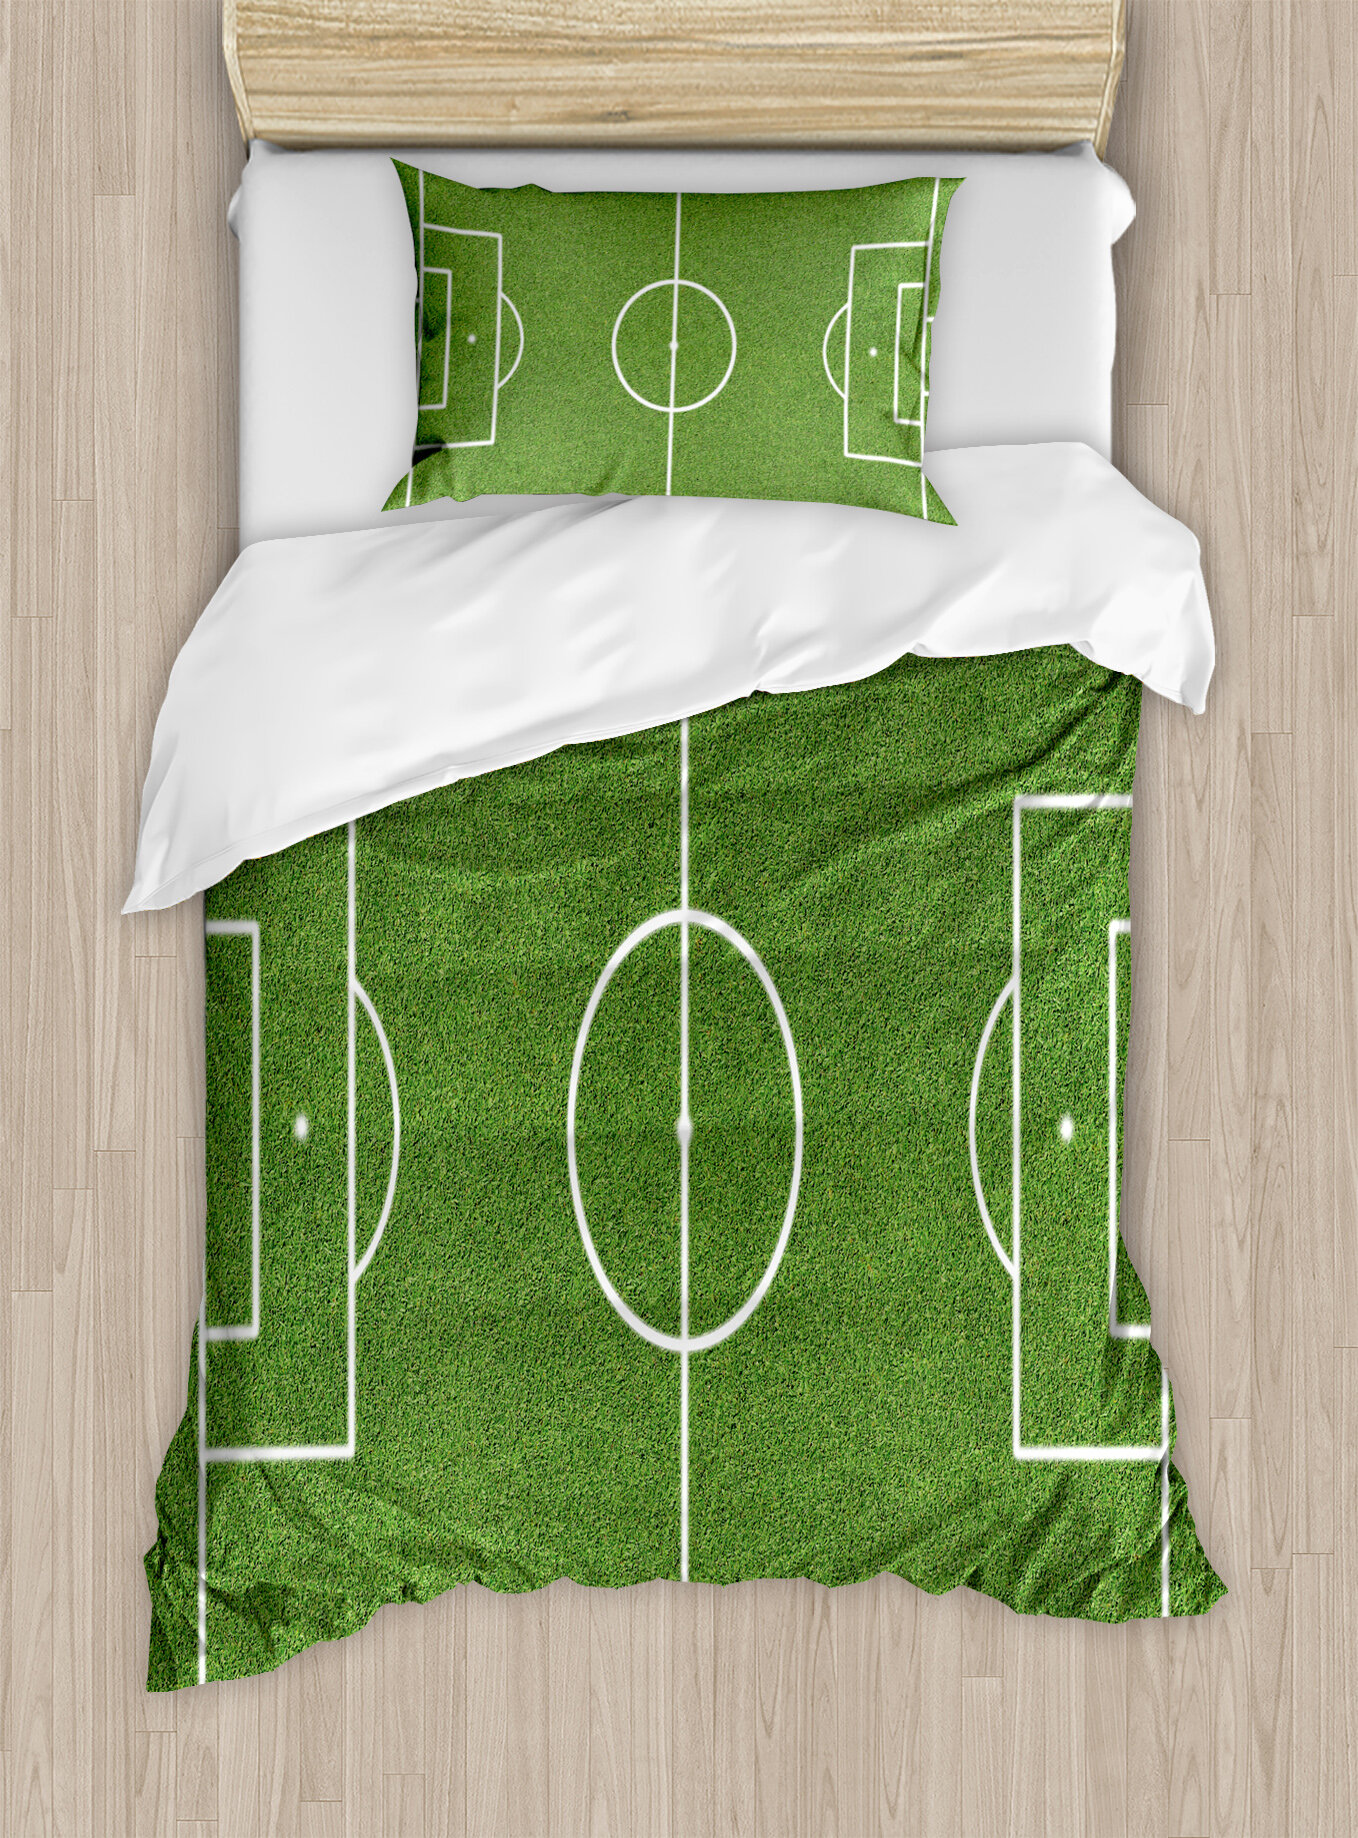 duvet soccer vintage american ciciap buy of set awesome cover sets united aliexpress bedding states bed new